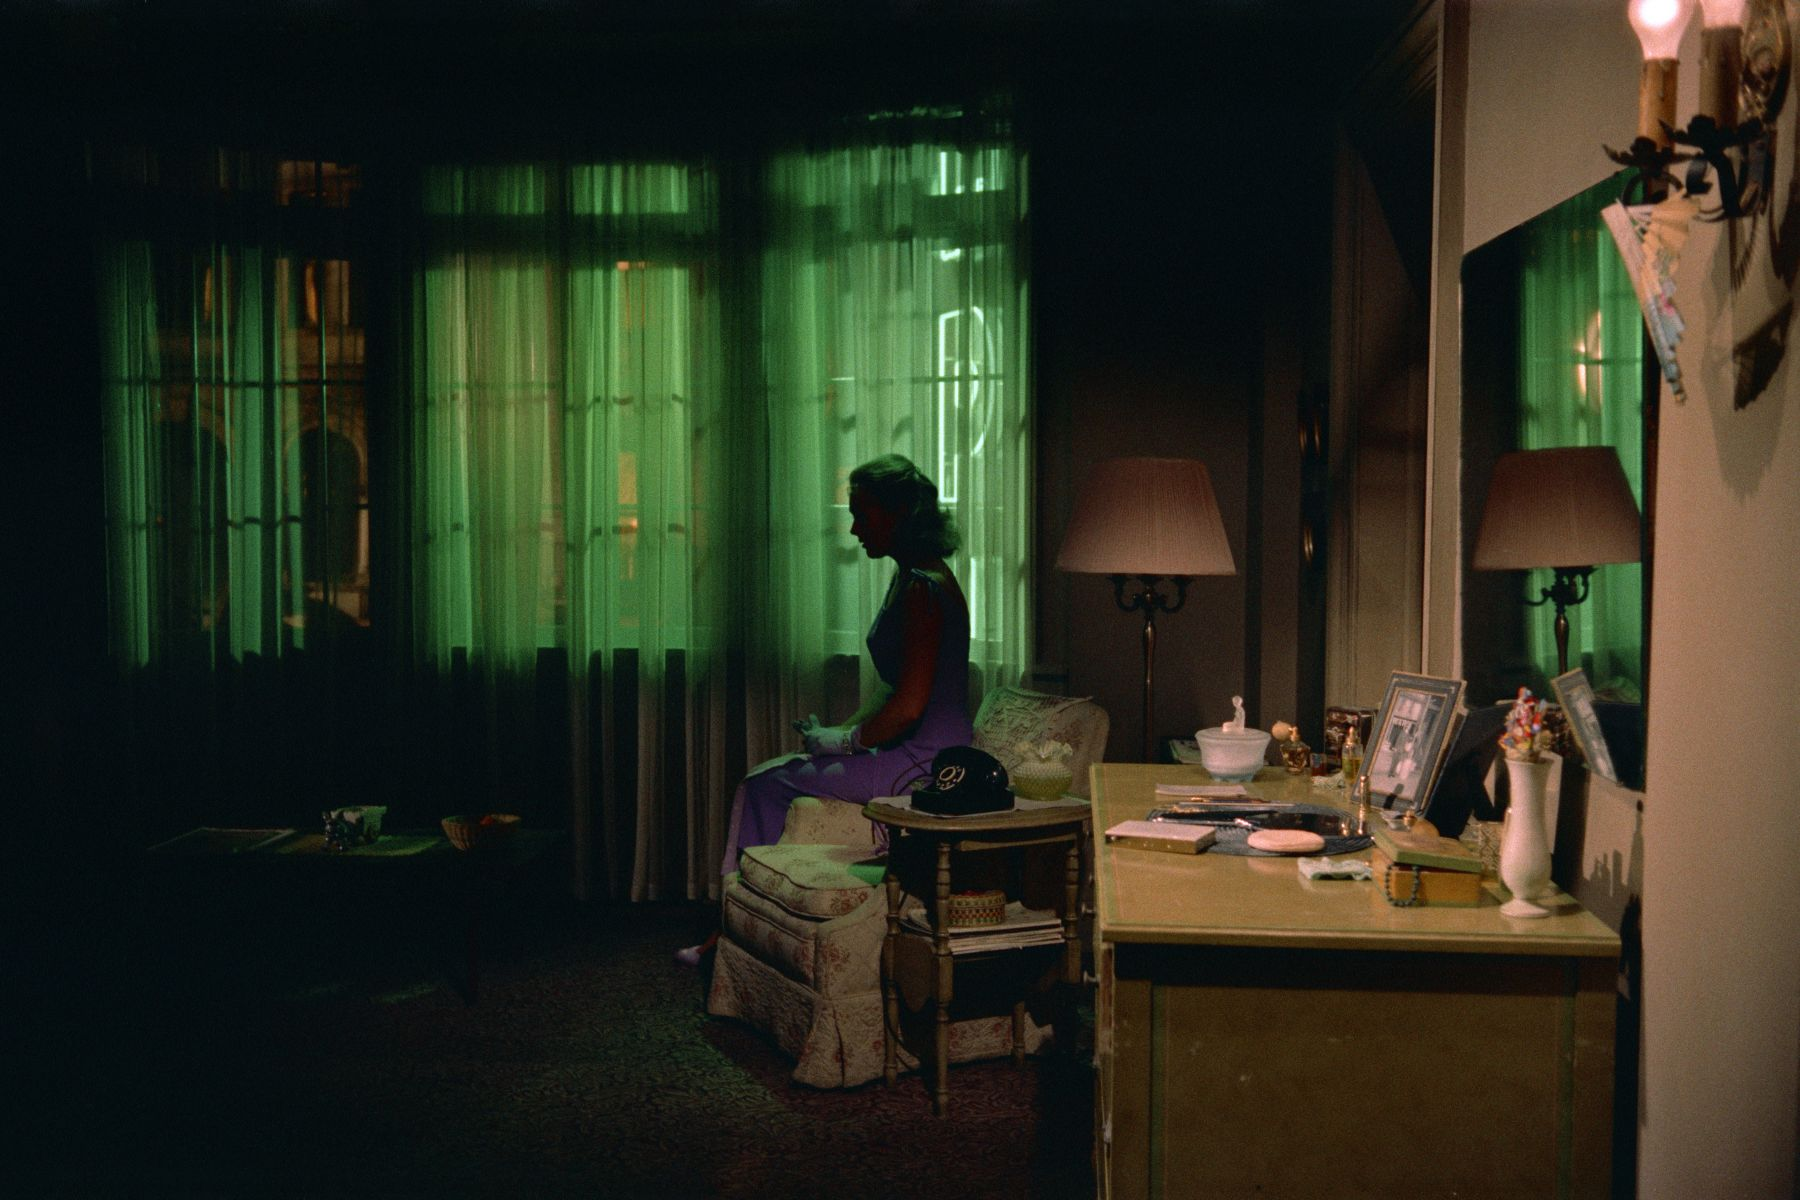 silhouette of a woman alone in an eerie room